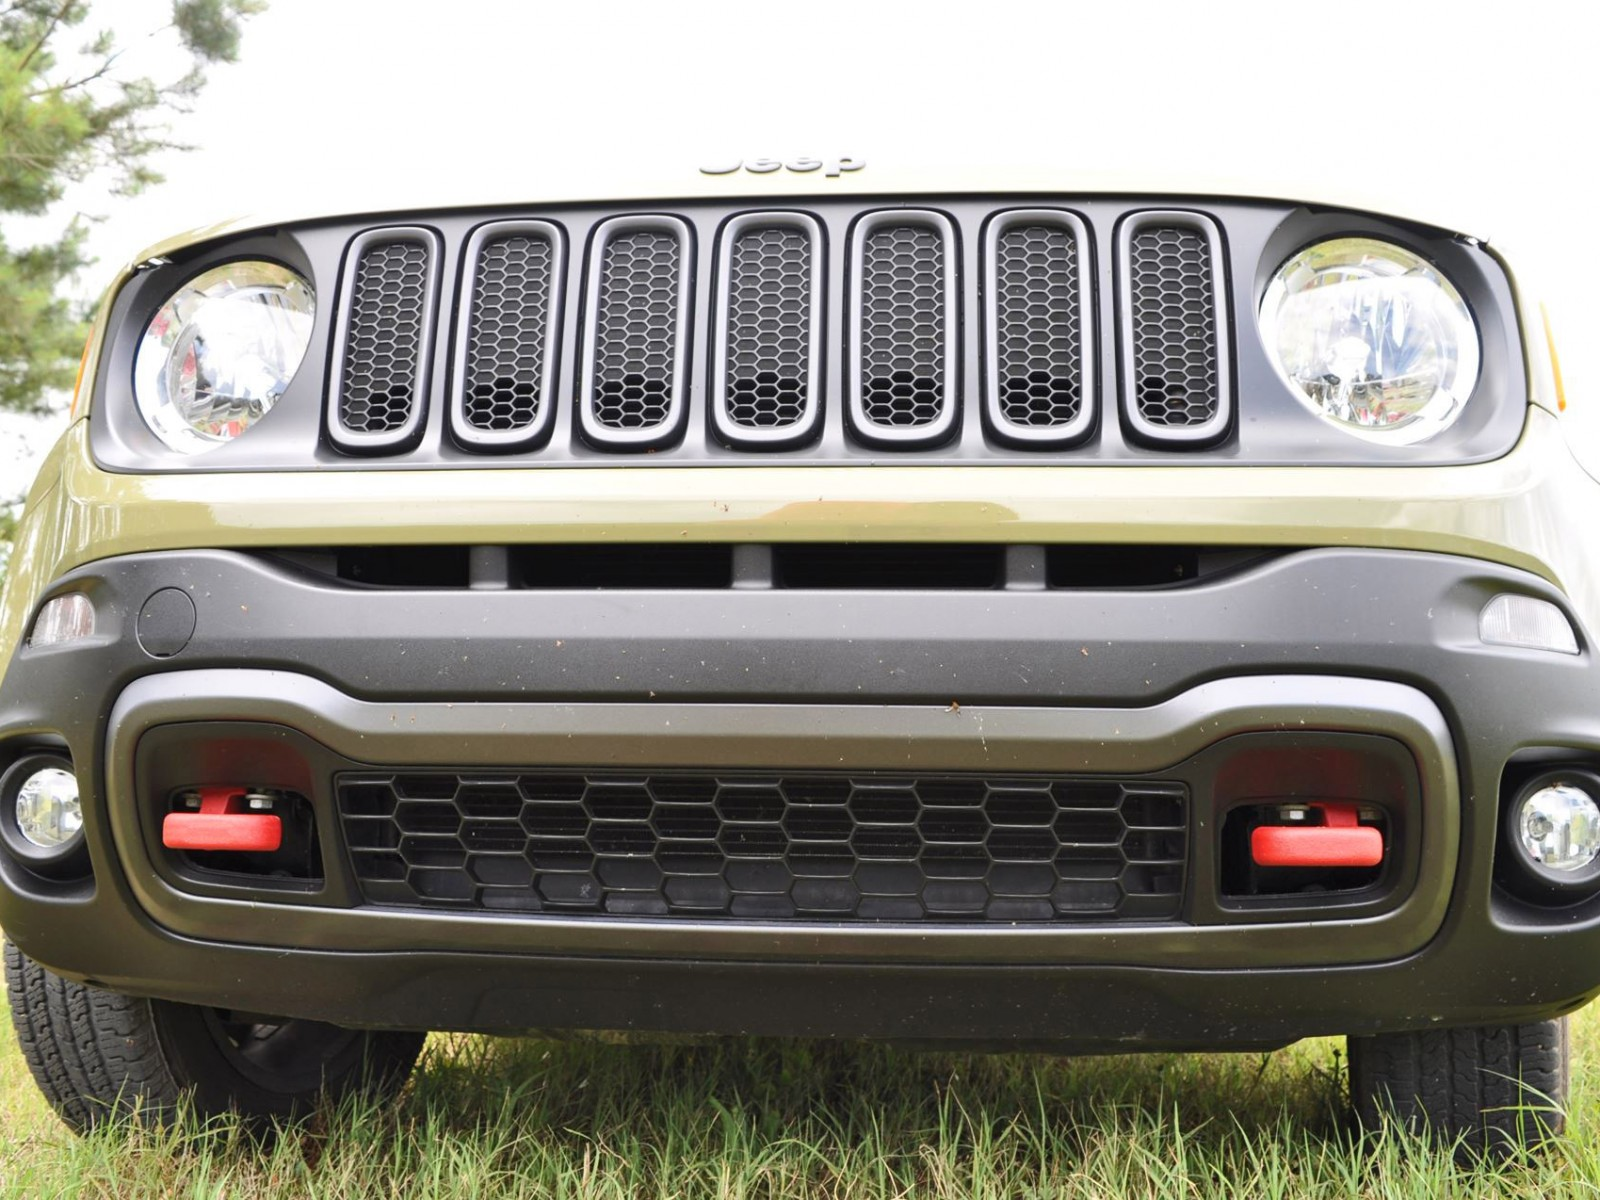 2015 jeep renegade trailhawk review 6. Black Bedroom Furniture Sets. Home Design Ideas